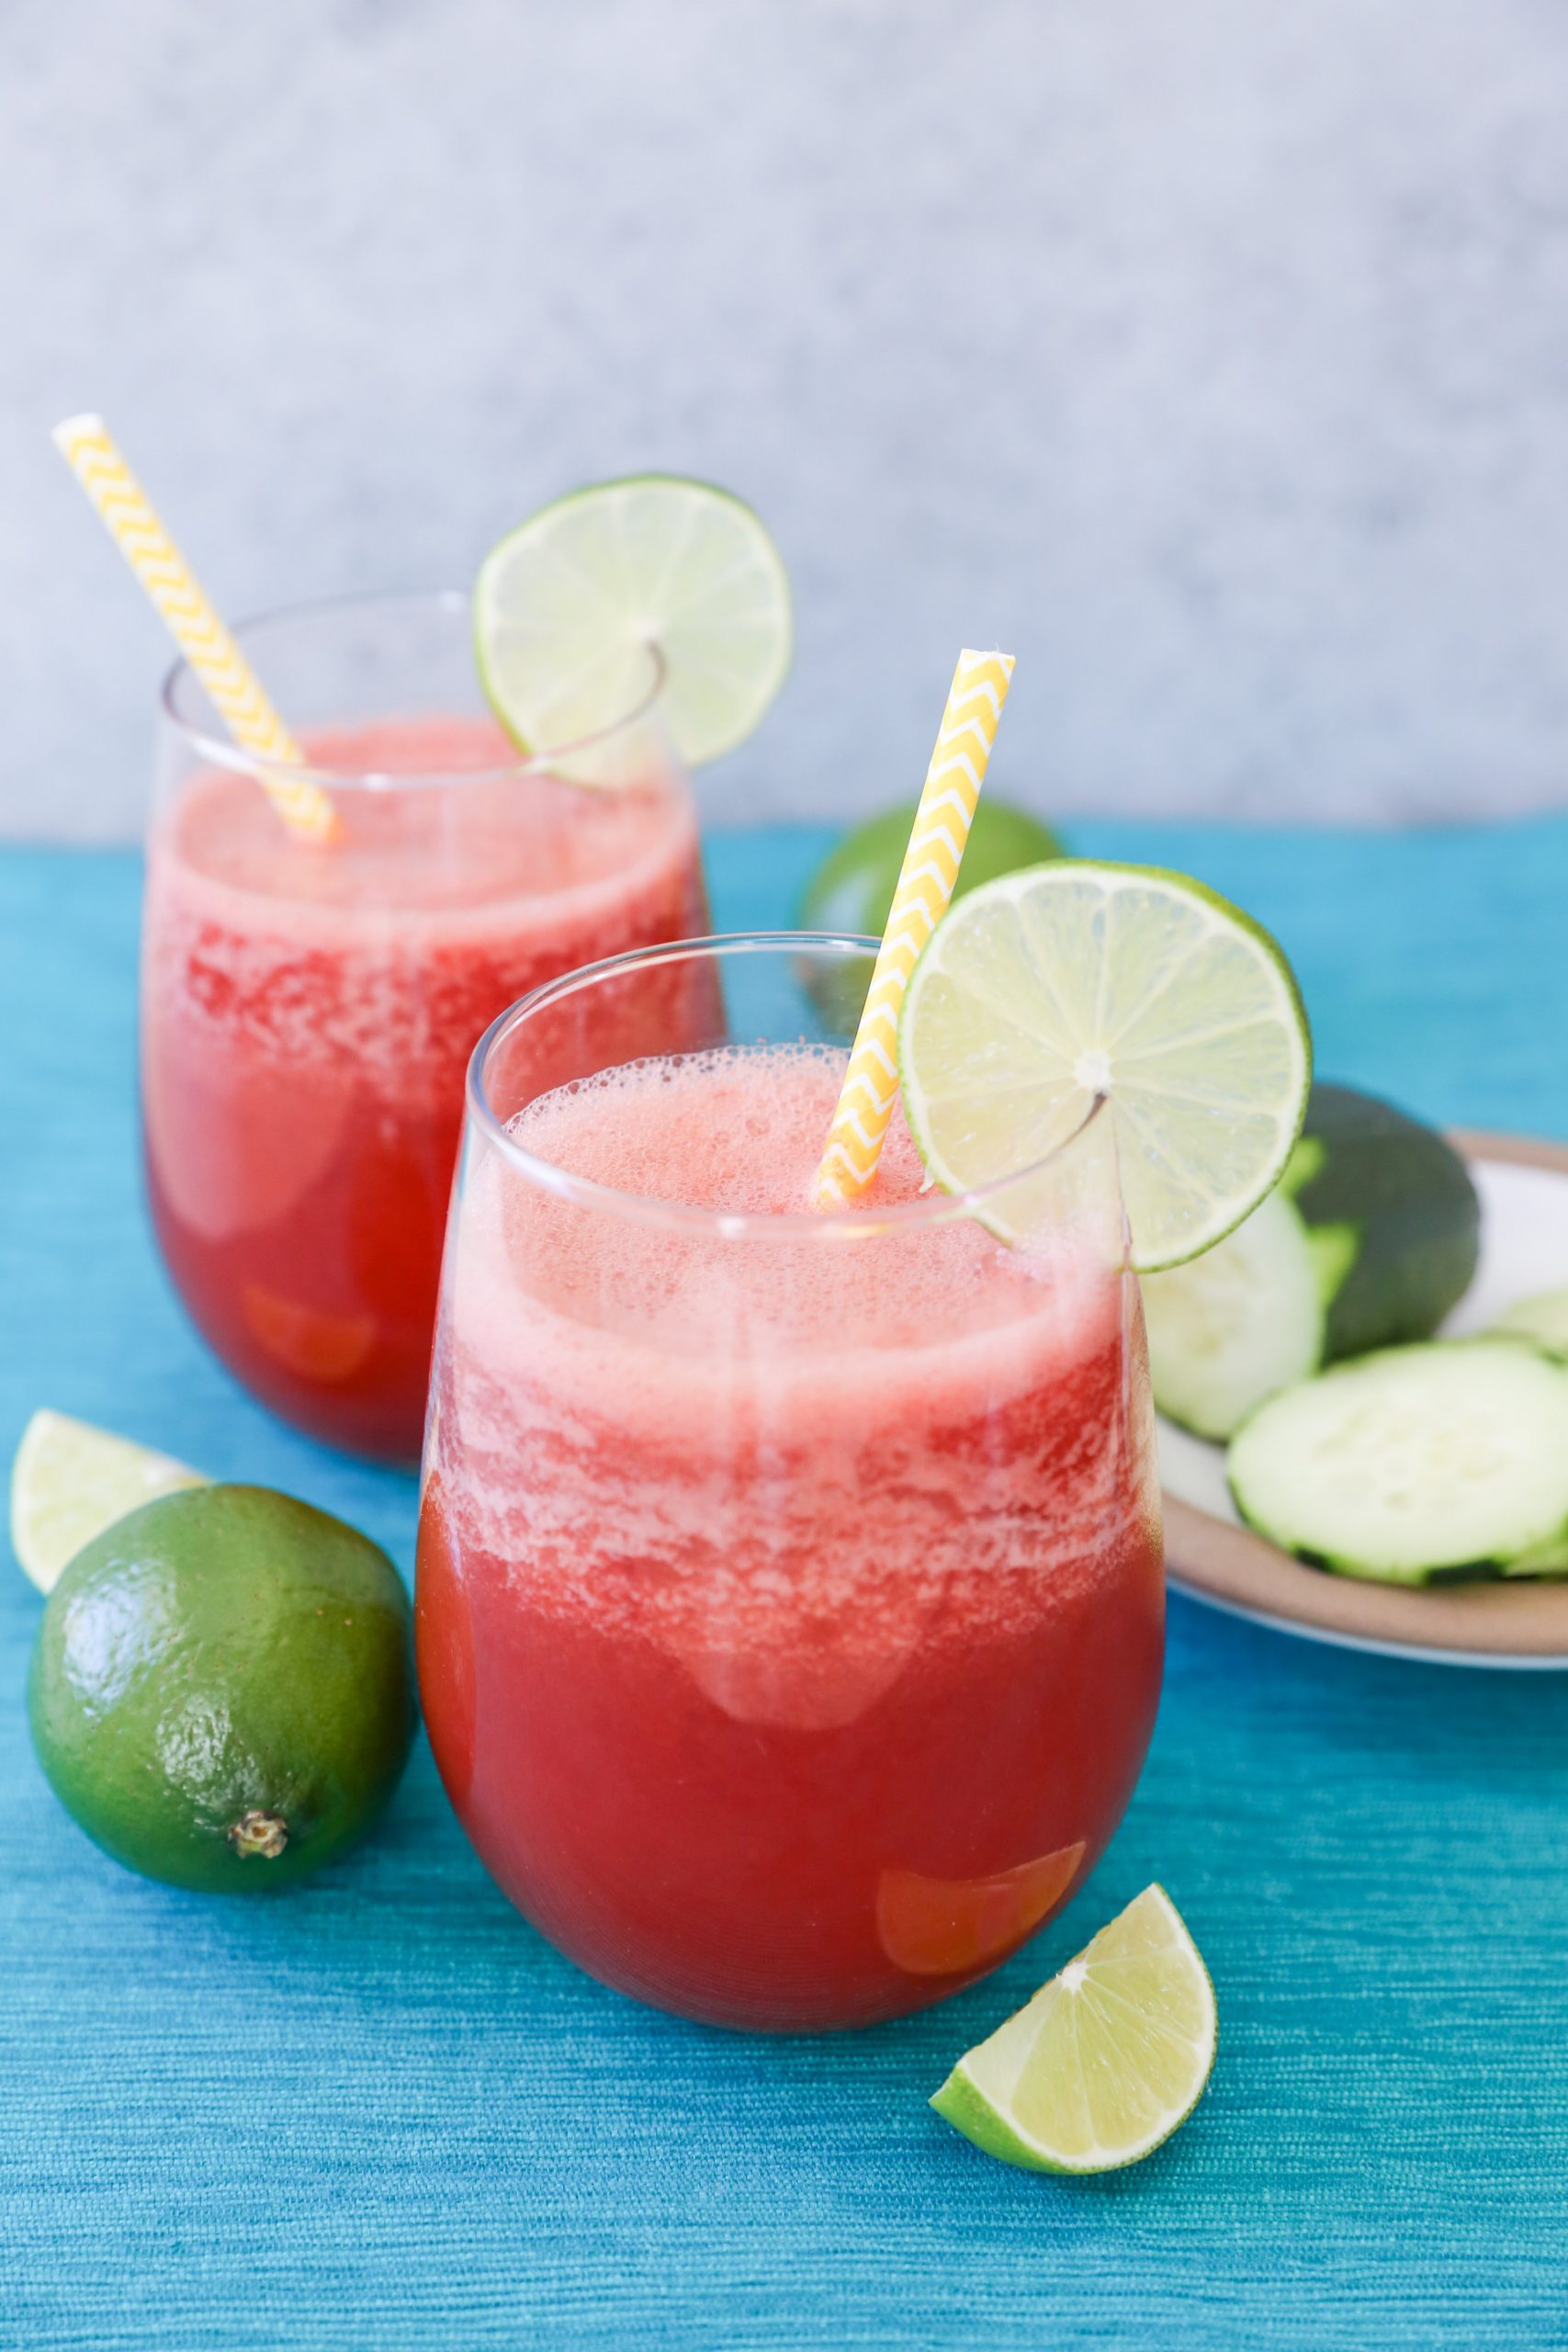 Watermelon-Beet Cucumber Lime Cooler with straws